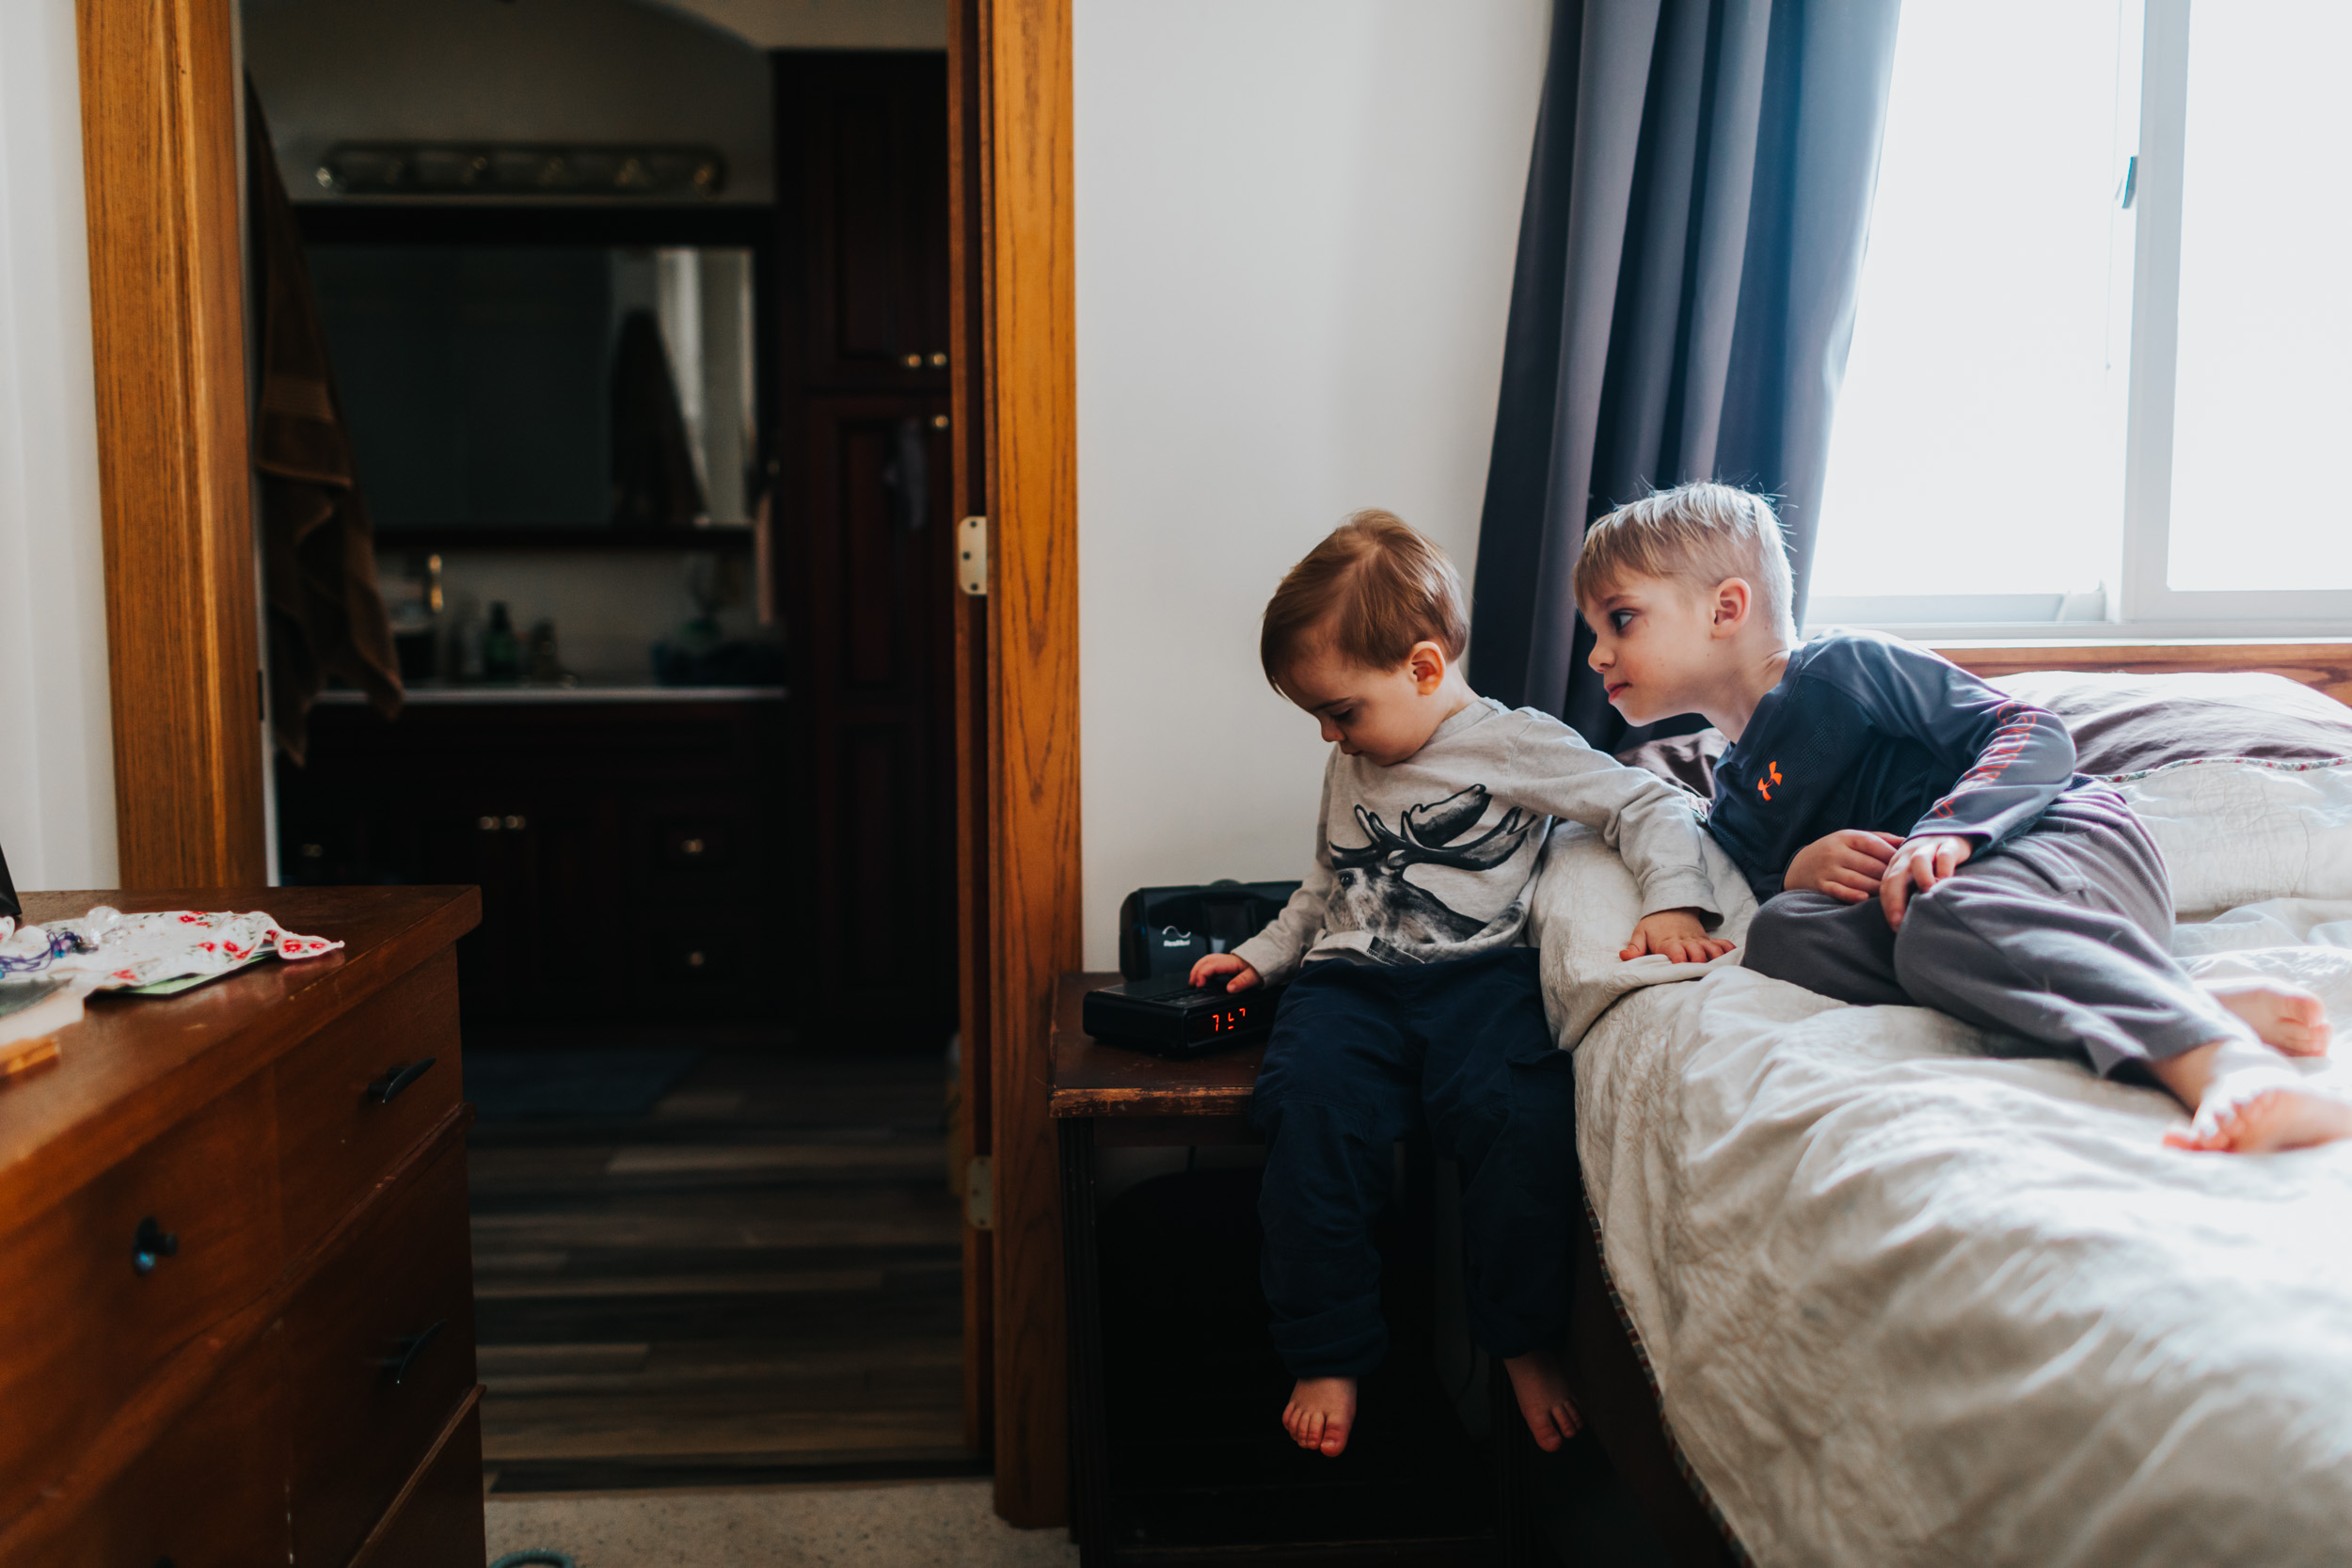 ERP_little_boys_playing_on_bed5B04A4868-2.jpg